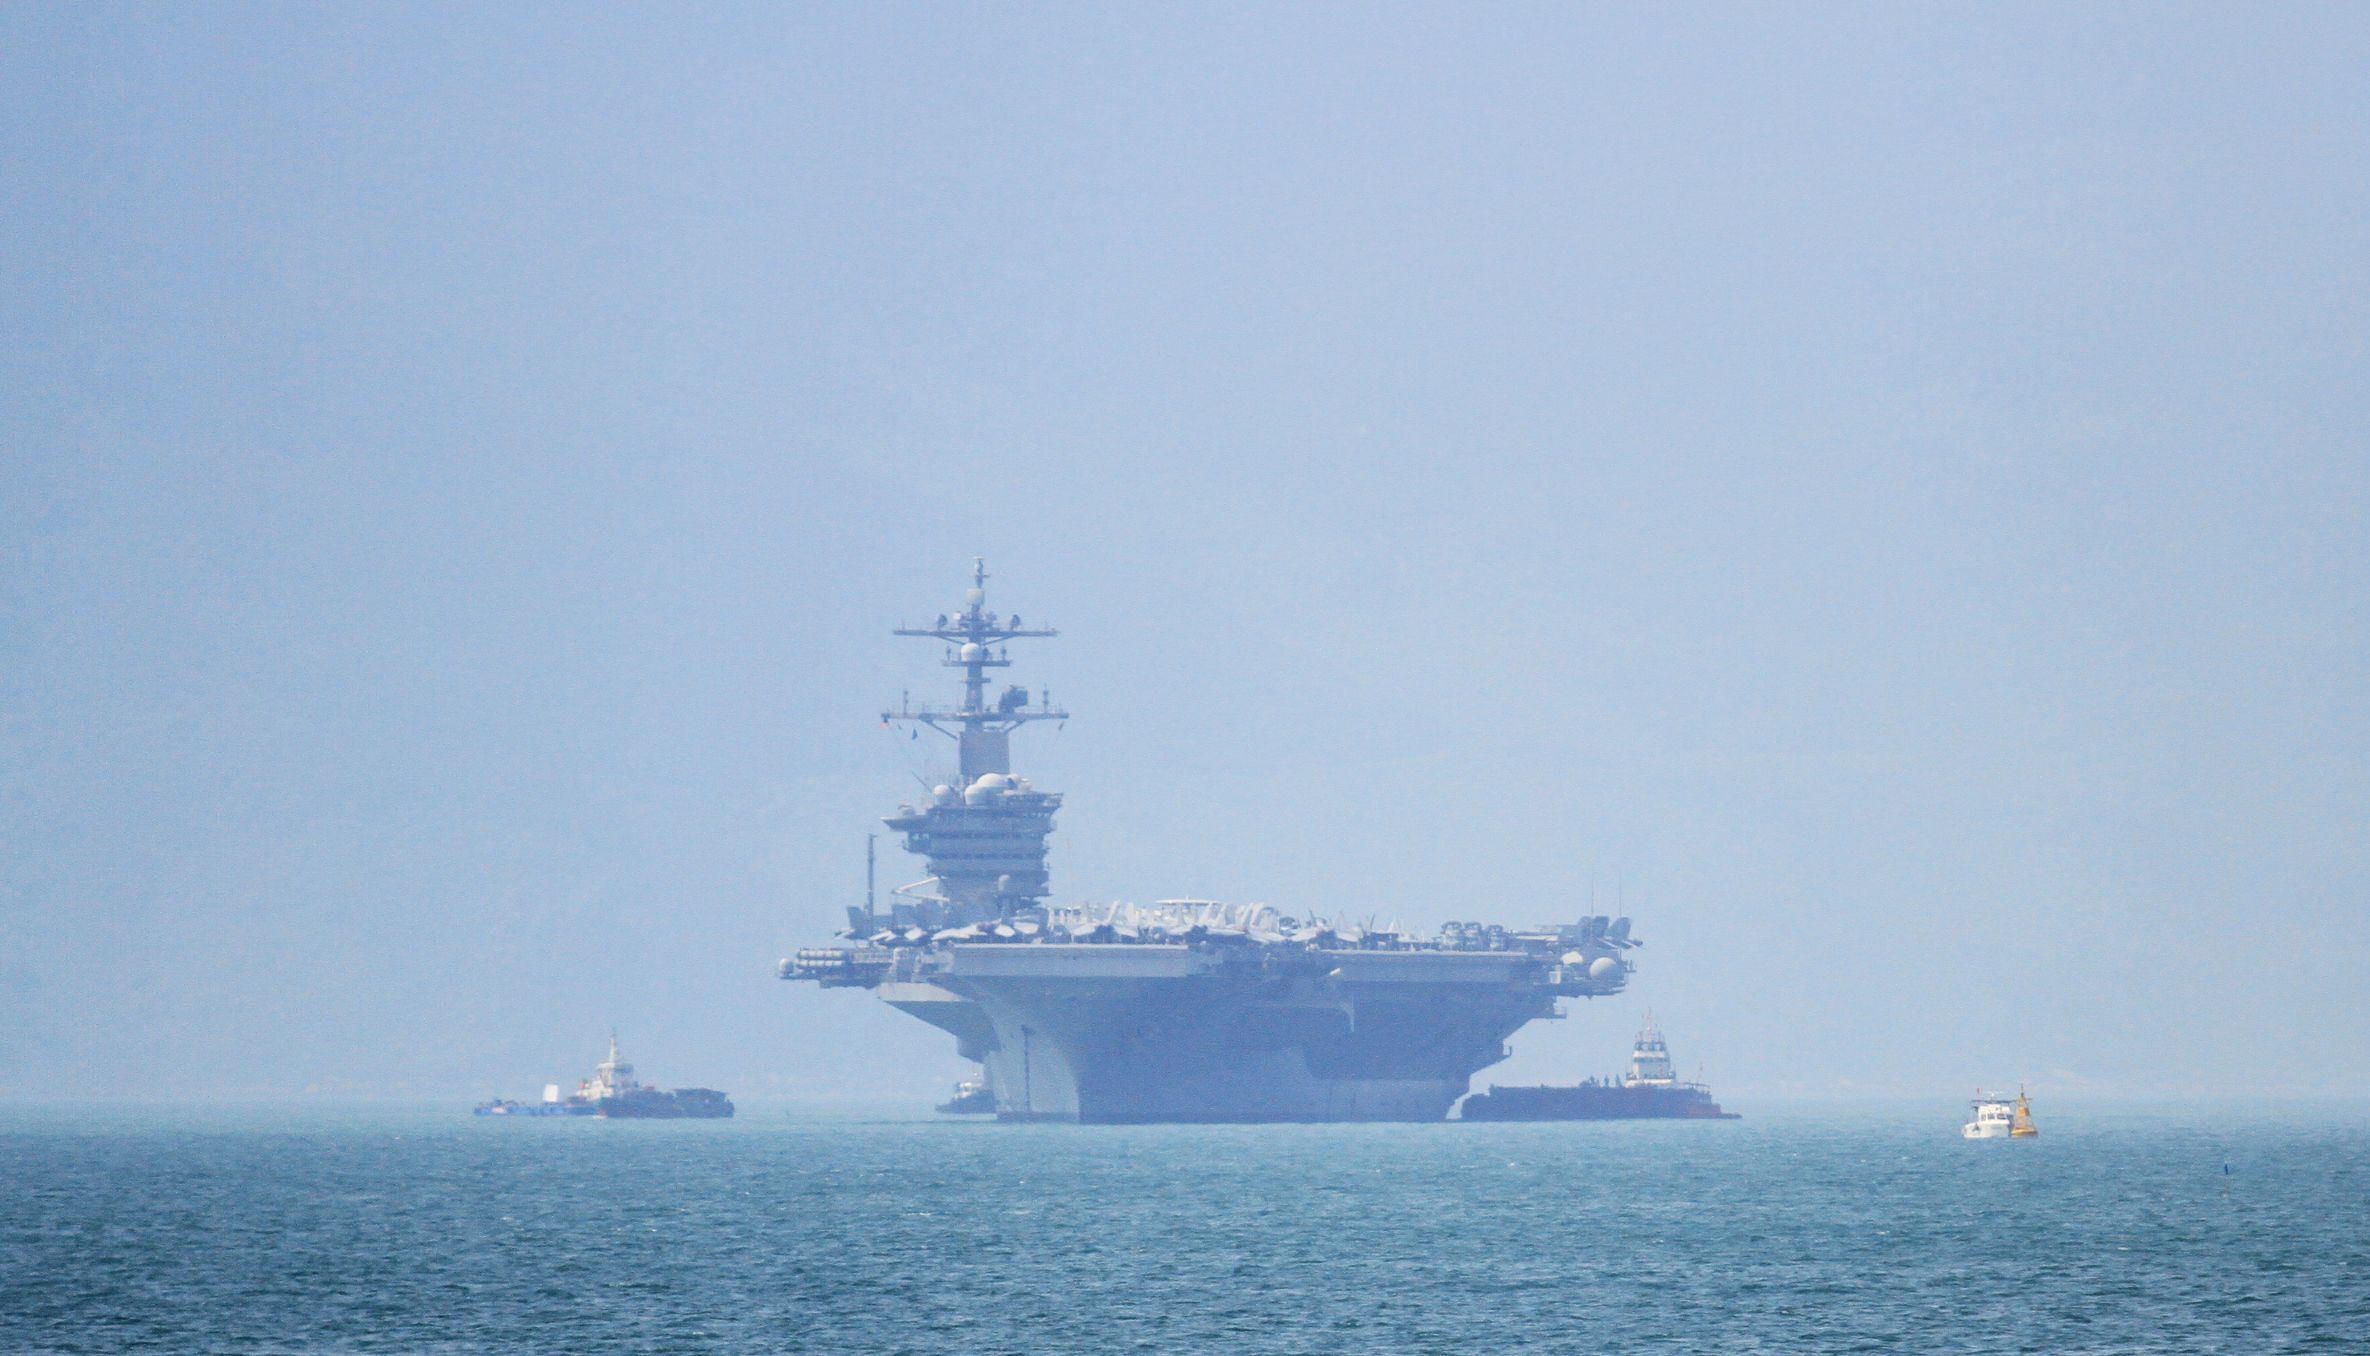 GettyImages-927416784 USS Carl Vinson